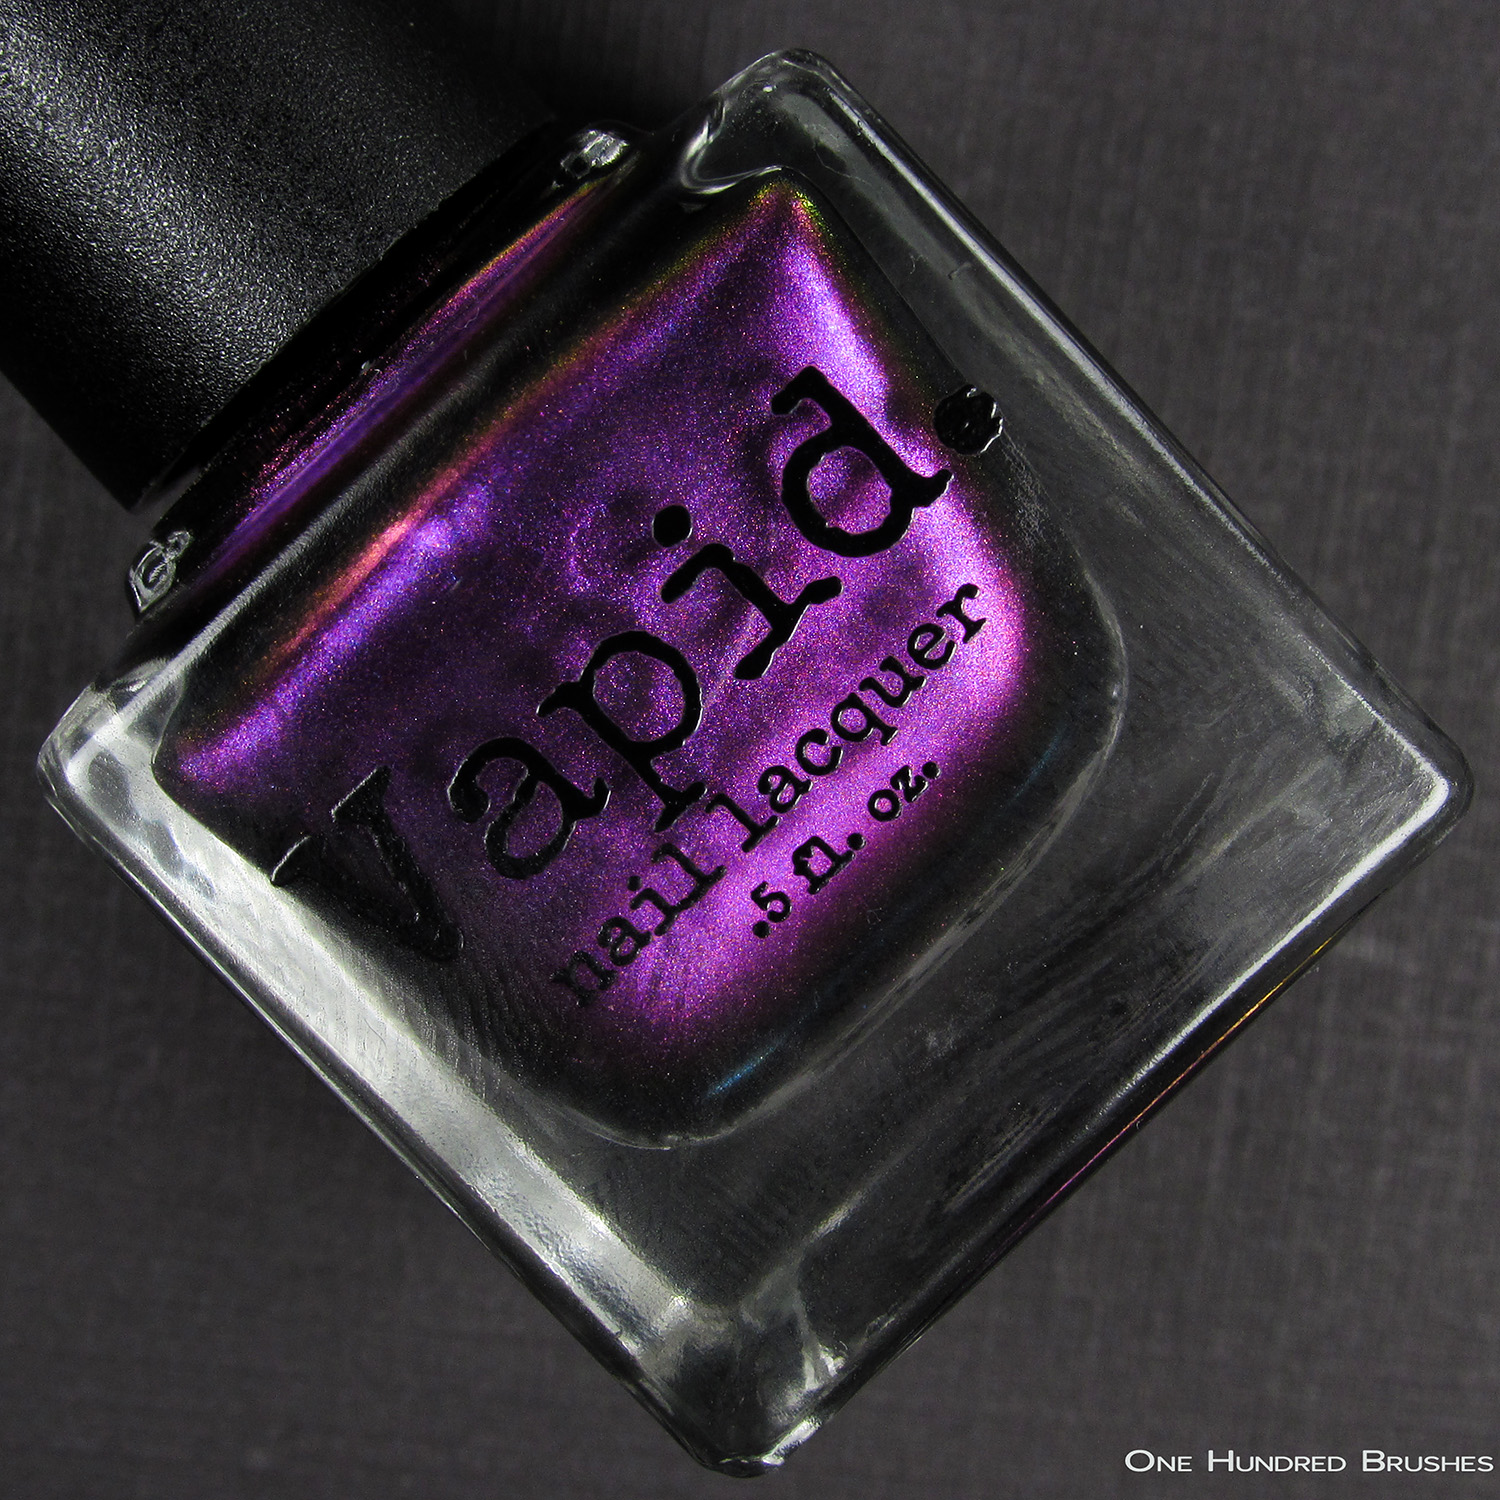 Let's Summon Demons - Vapid Lacquer Sep 2018